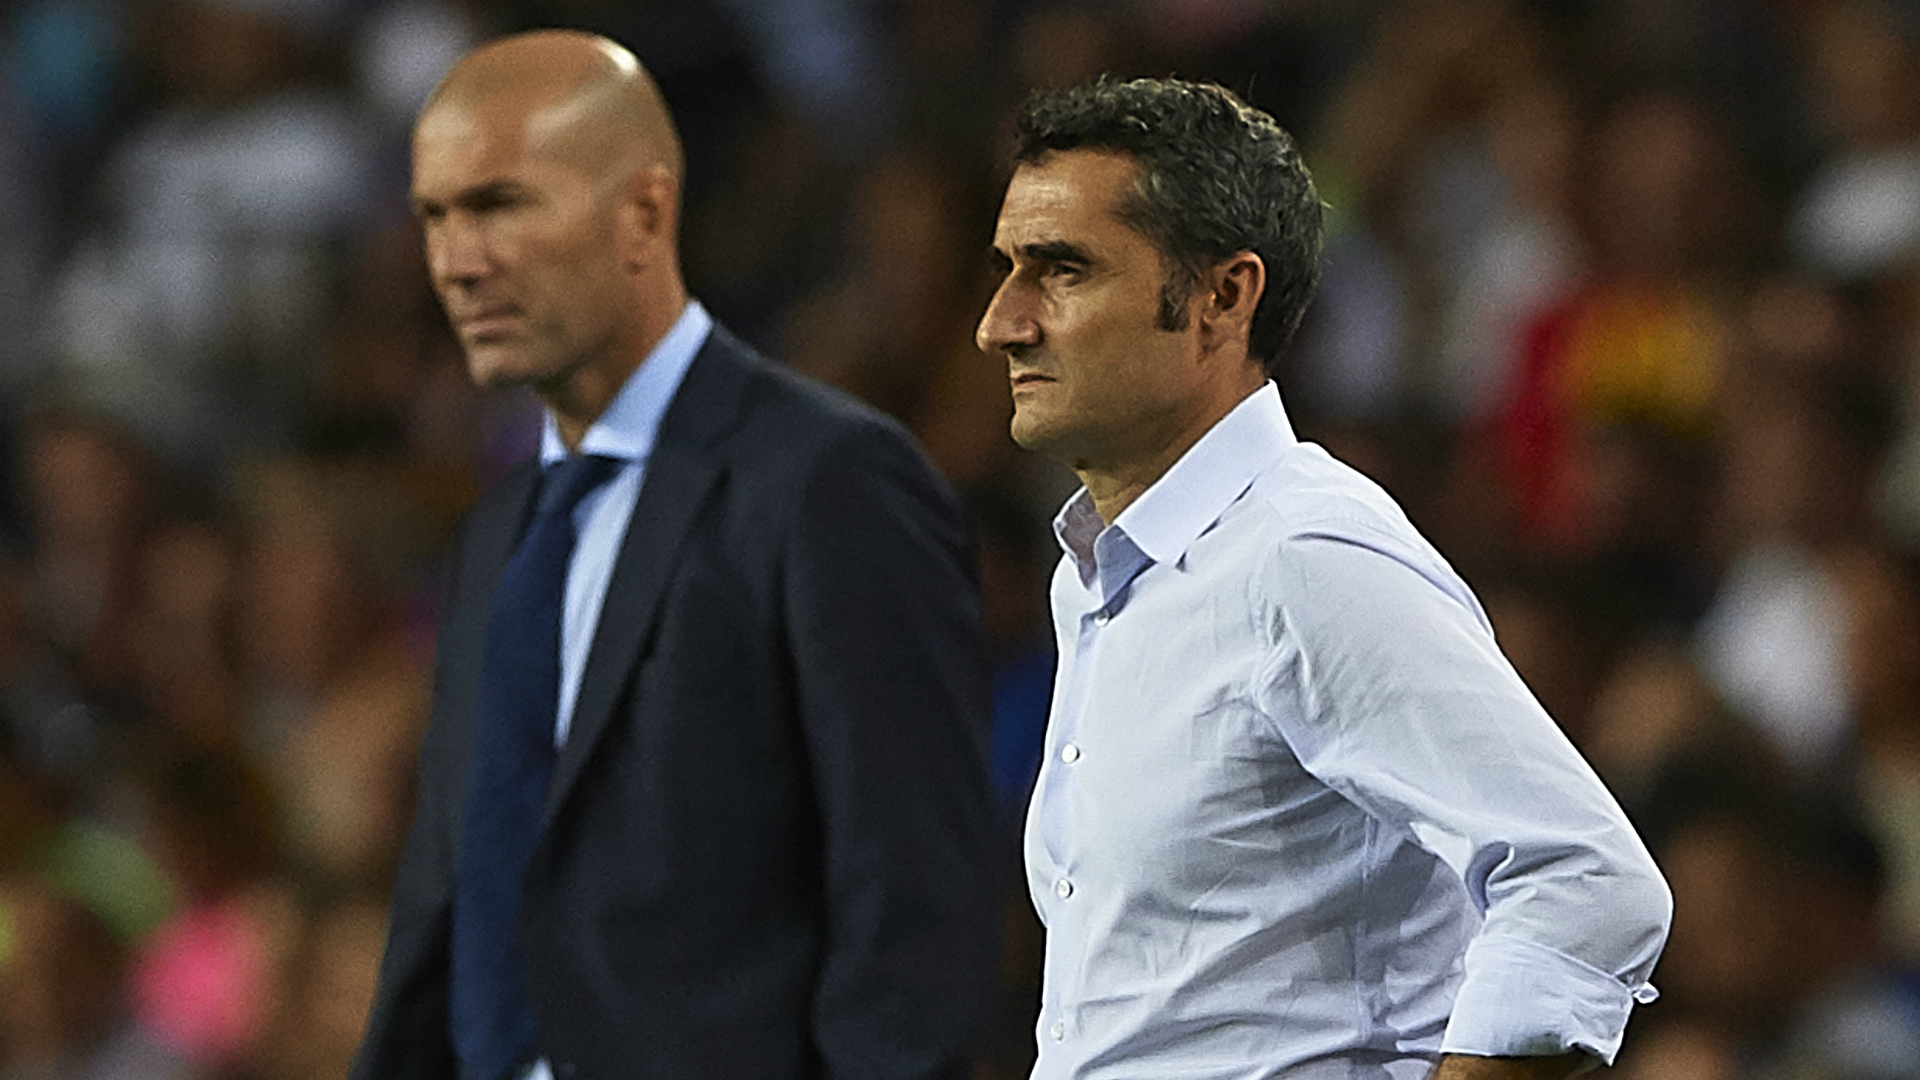 Spanish Super cup : Barcelona-Real Madrid 0-0 |Confirmed starting lineups